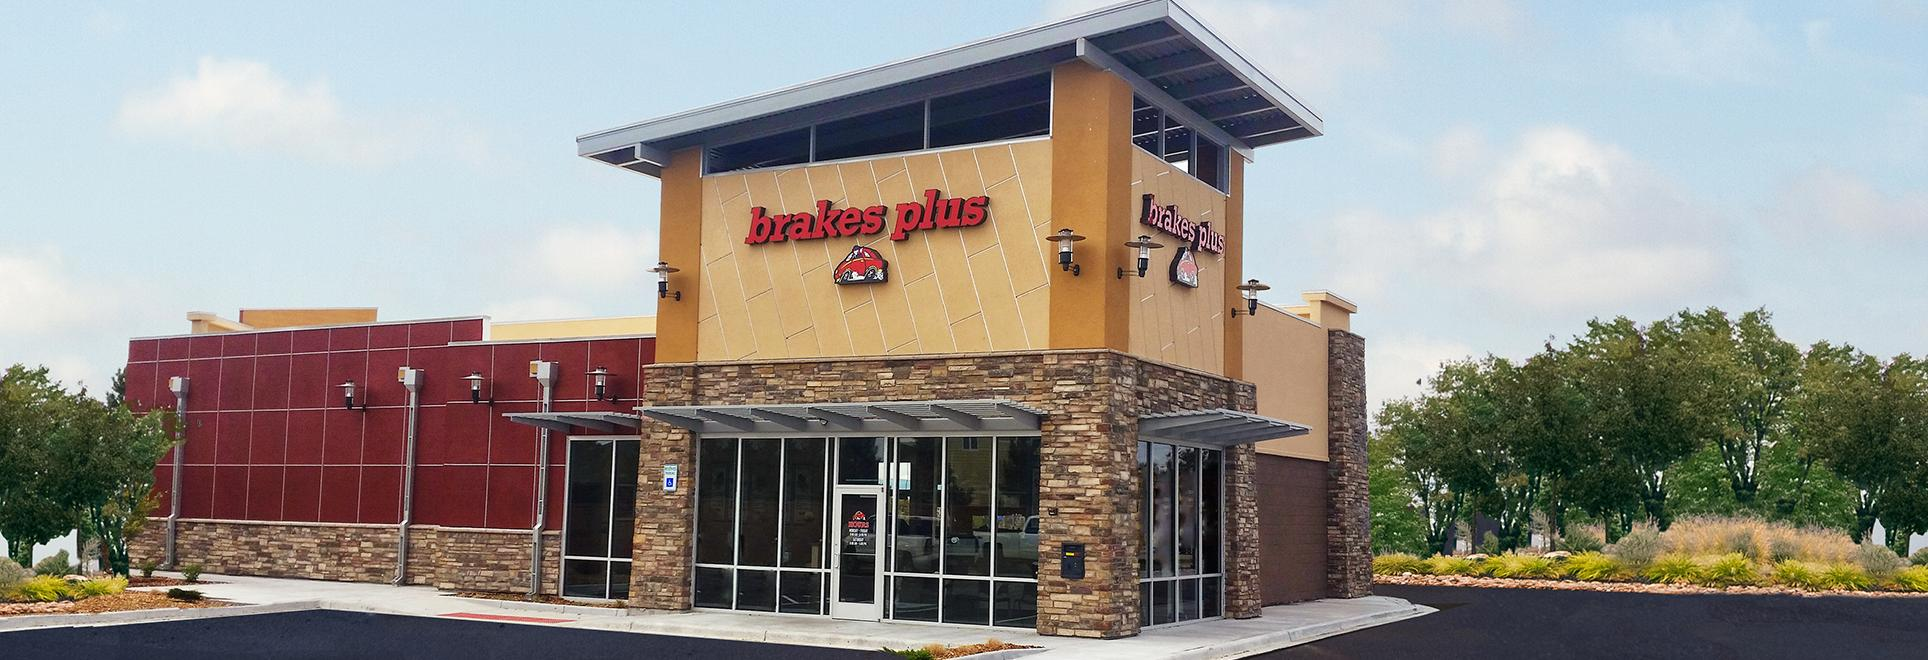 Brakes Plus in Texas banner